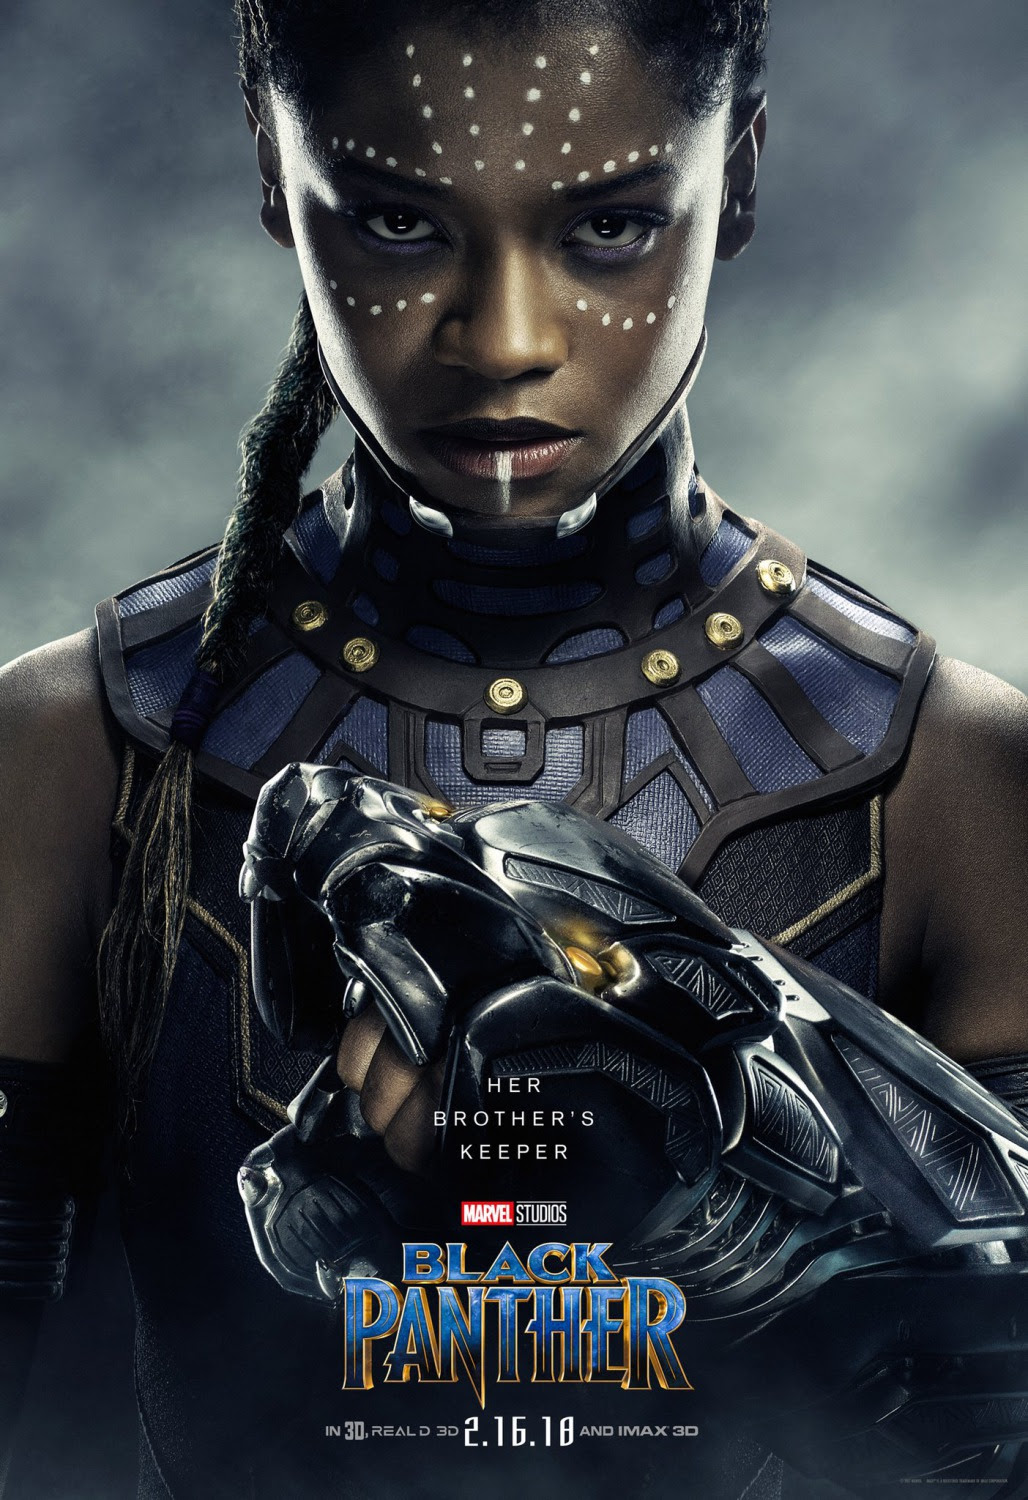 Extra Large Movie Poster Image for Black Panther (#8 of 23)